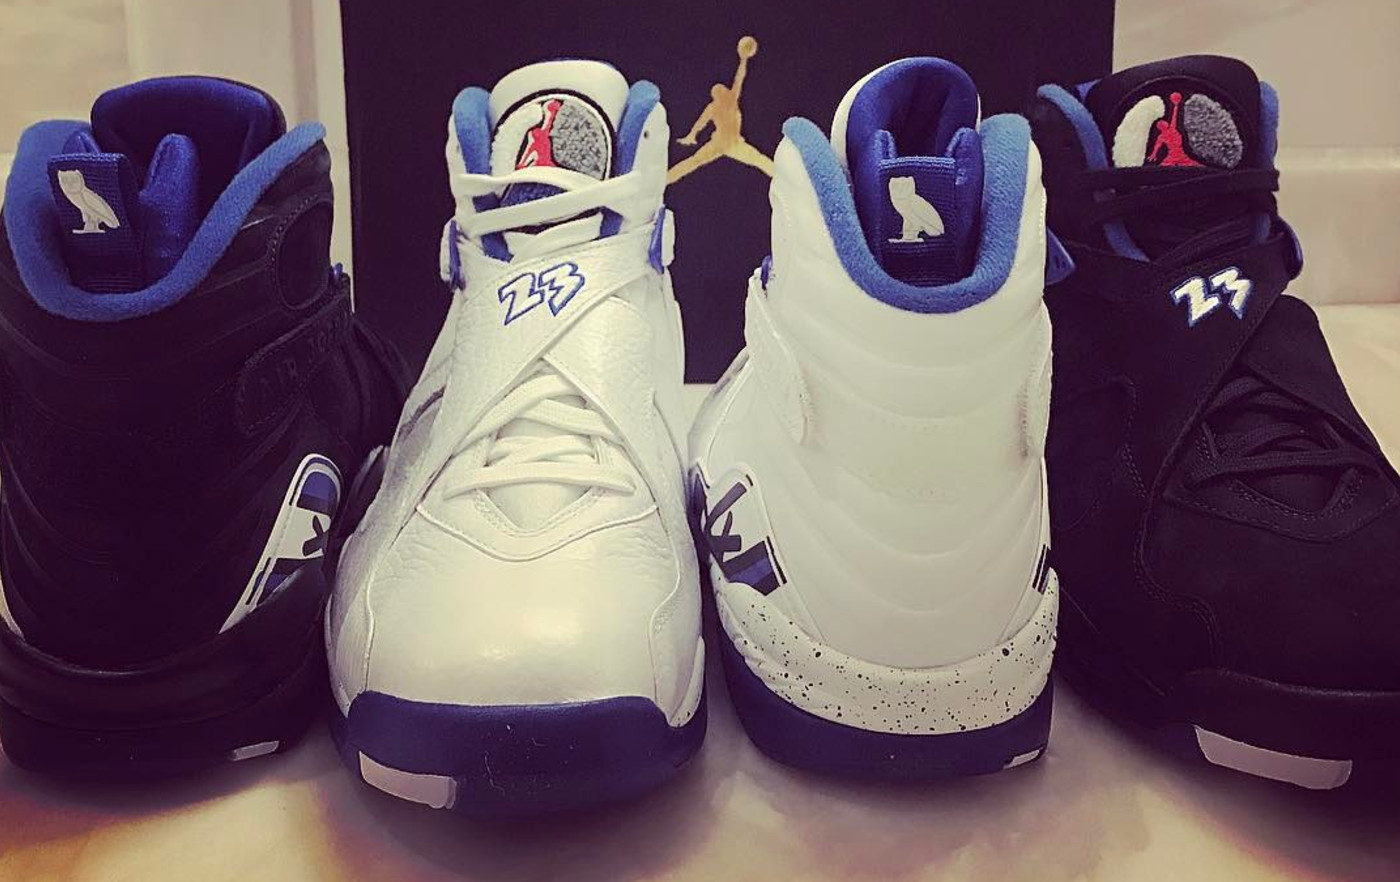 Drake OVO Air Jordan 8 Calipari Pack